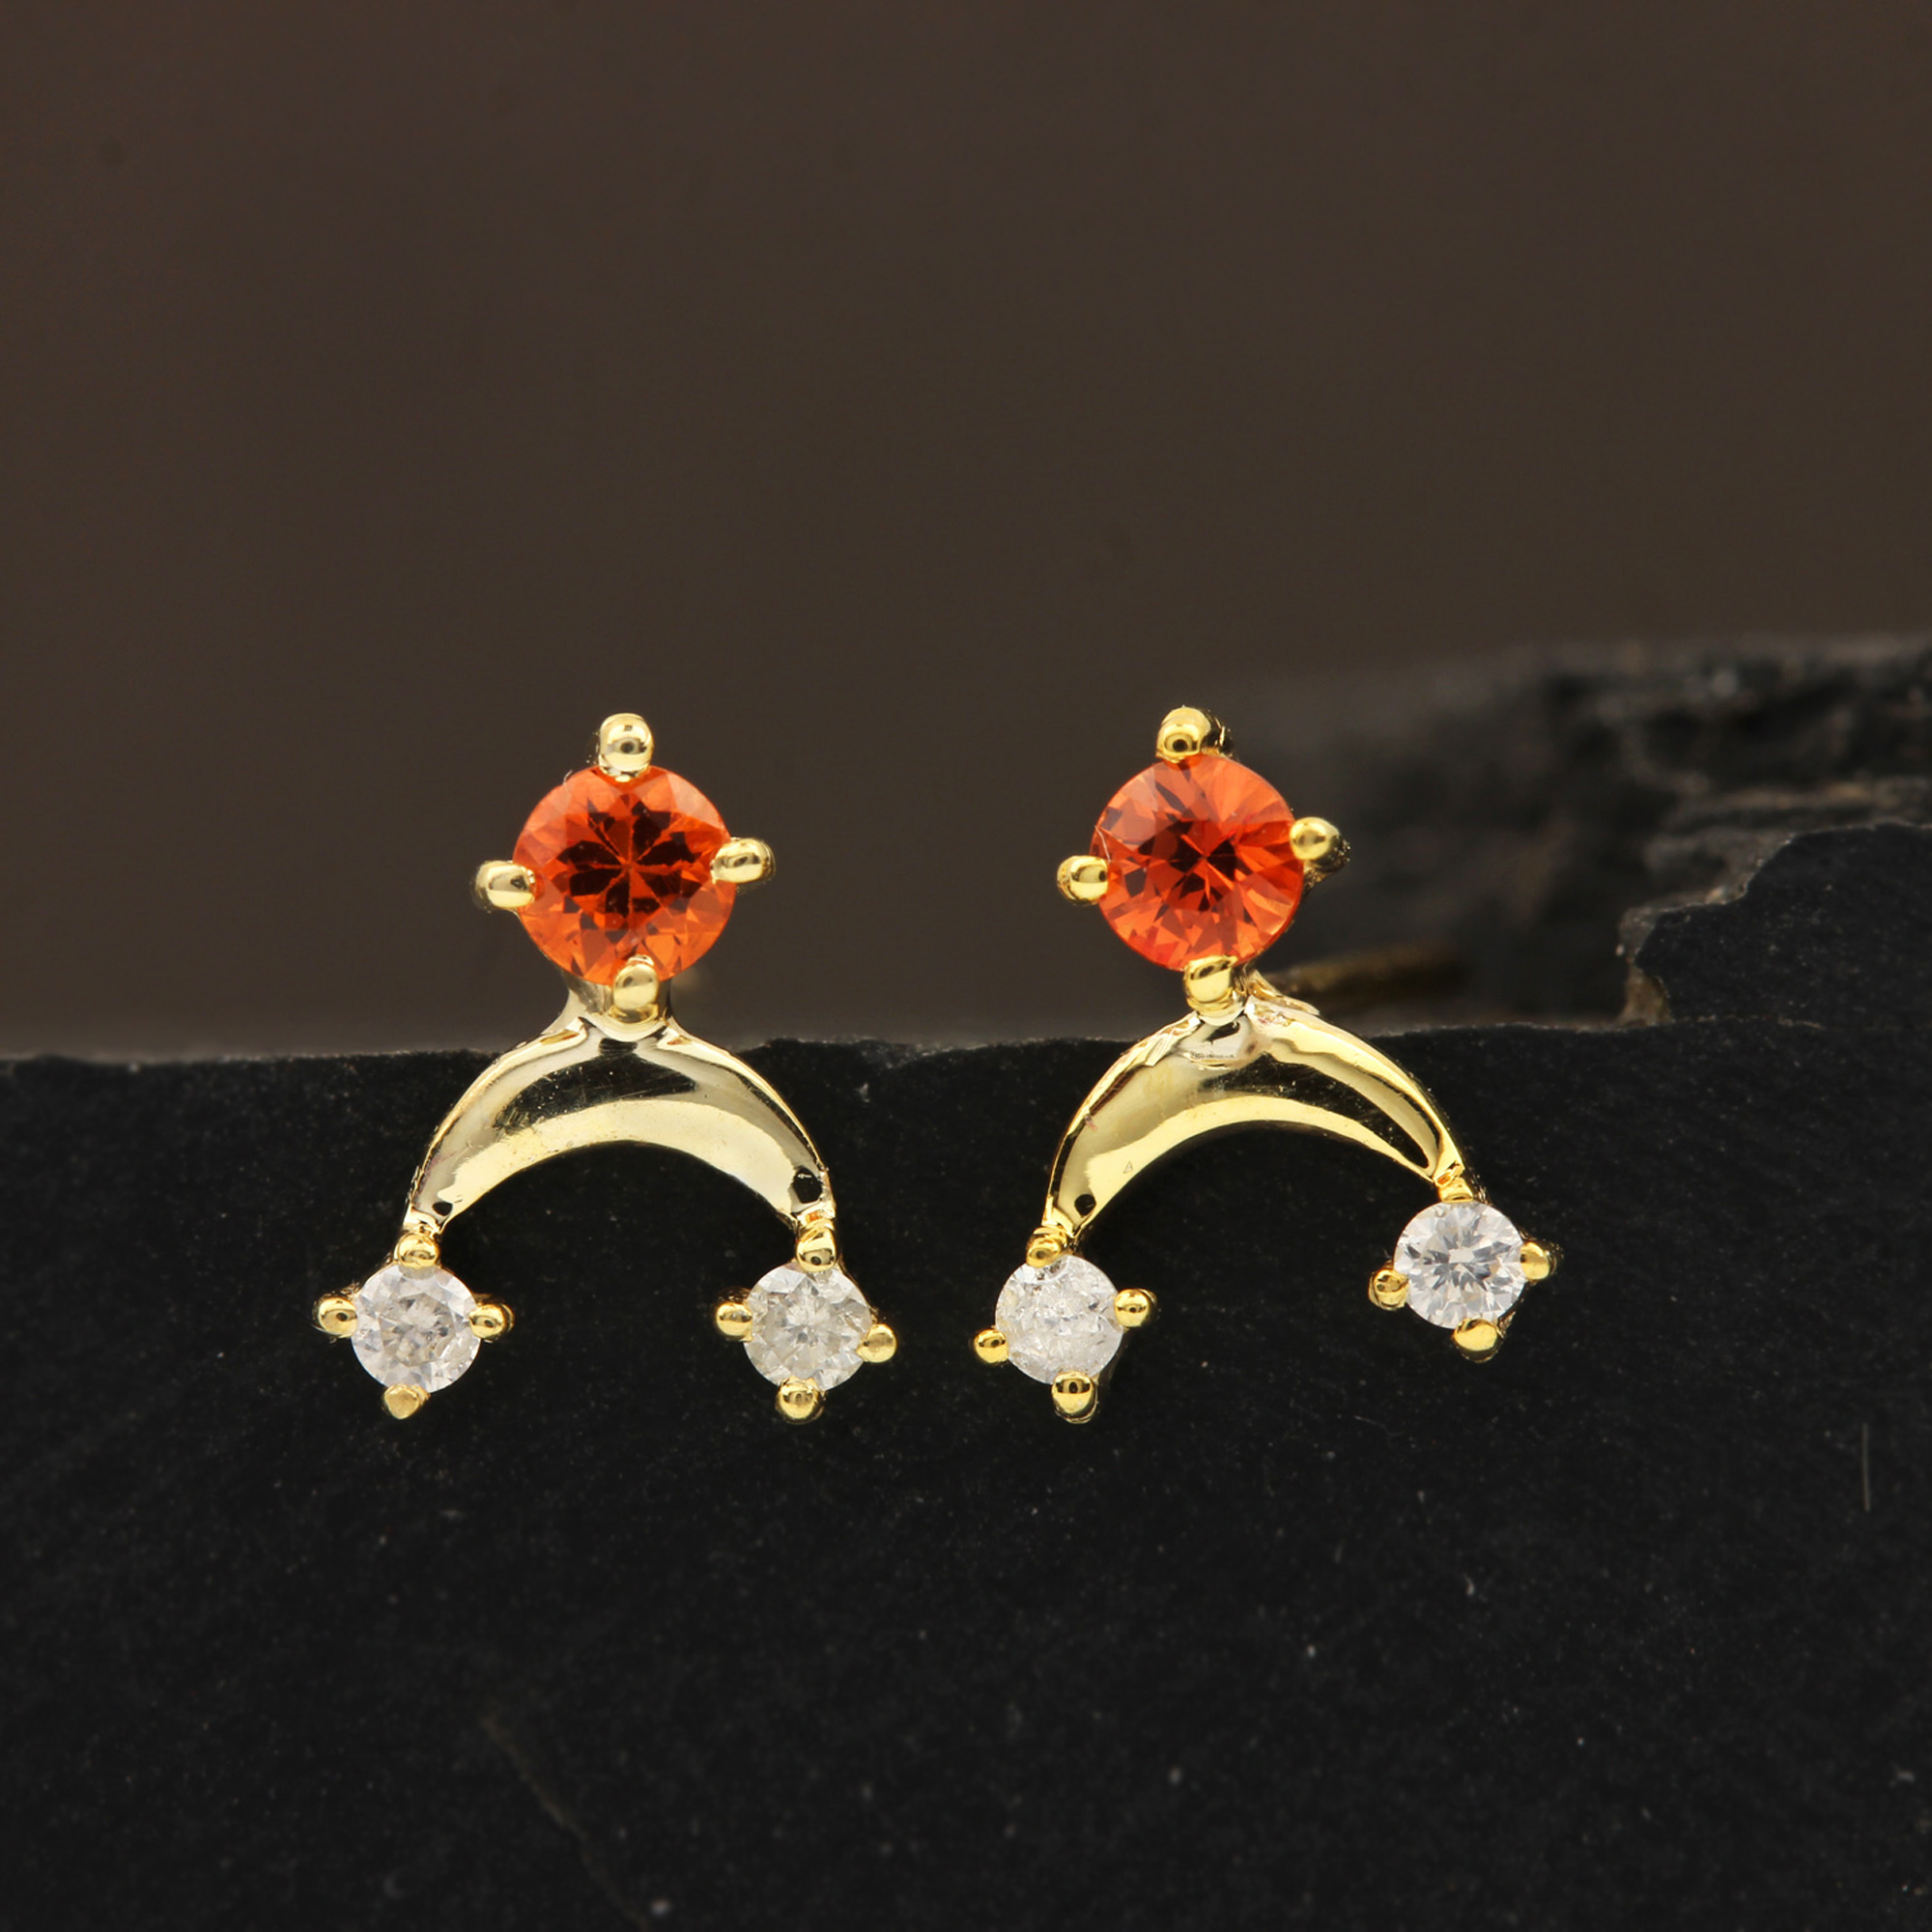 Solid 14k Gold Stud Earrings Adorned With Diamond & Sapphire Gemstone